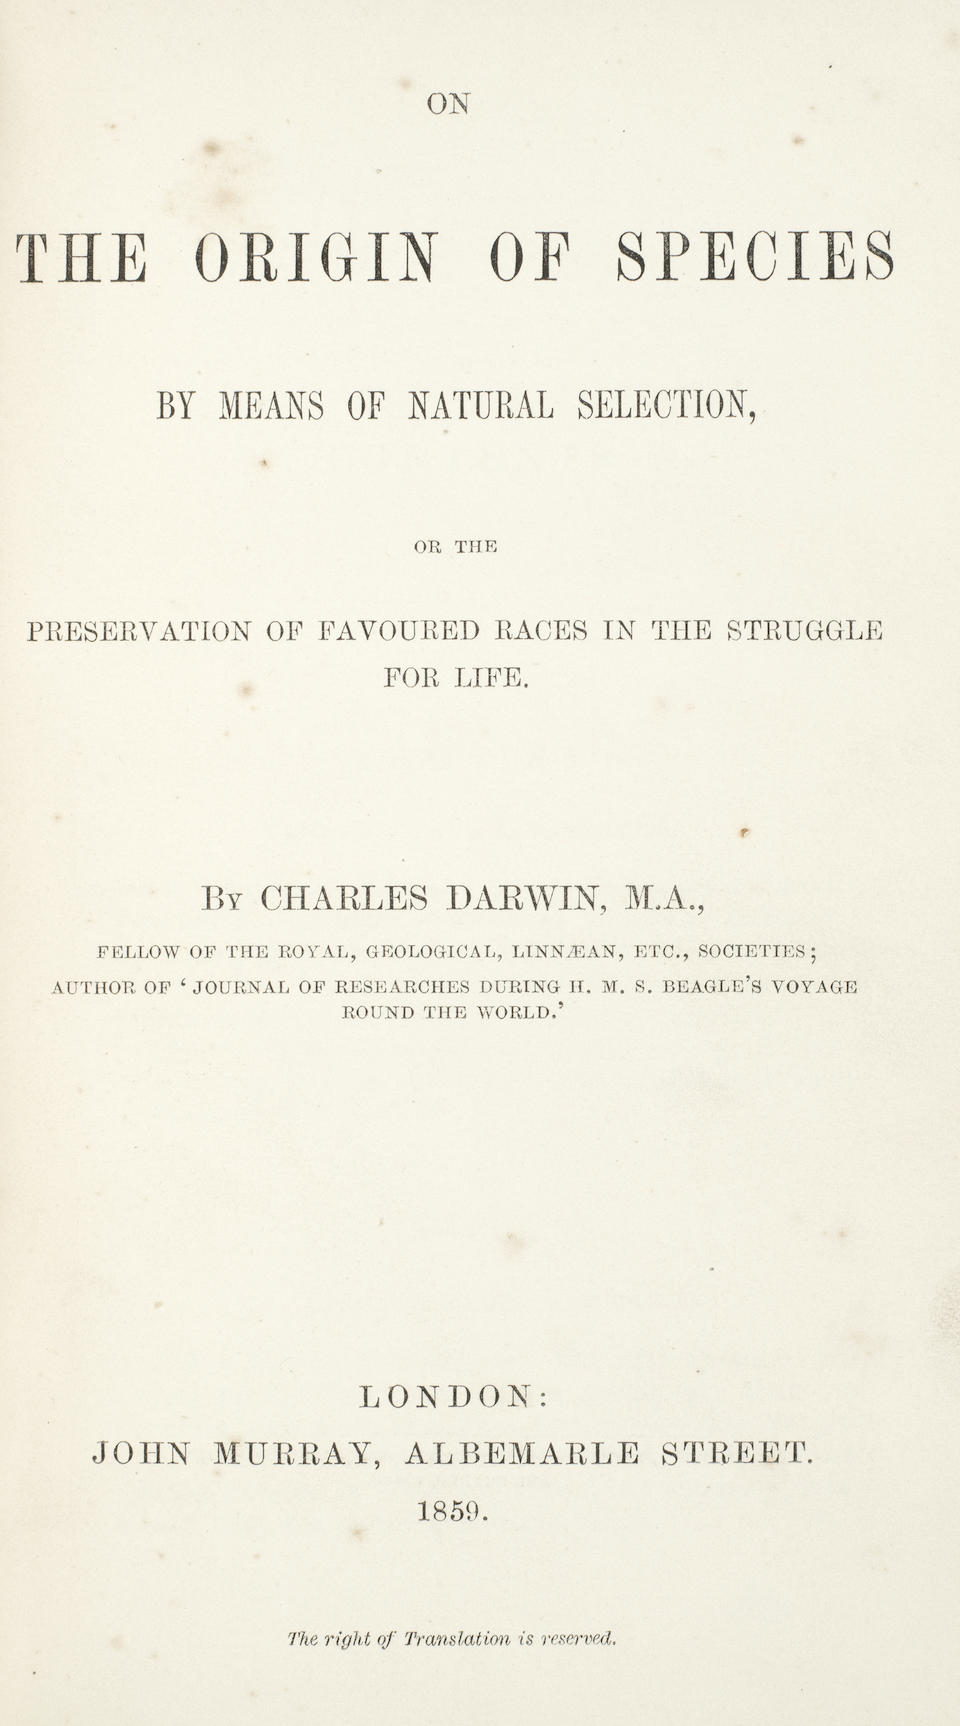 DARWIN (CHARLES) On the Origin of Species by Means of Natural Selection, or the Preservation of Favoured Races in the Struggle for Life, FIRST EDITION, FIRST ISSUE, John Murray, 1859